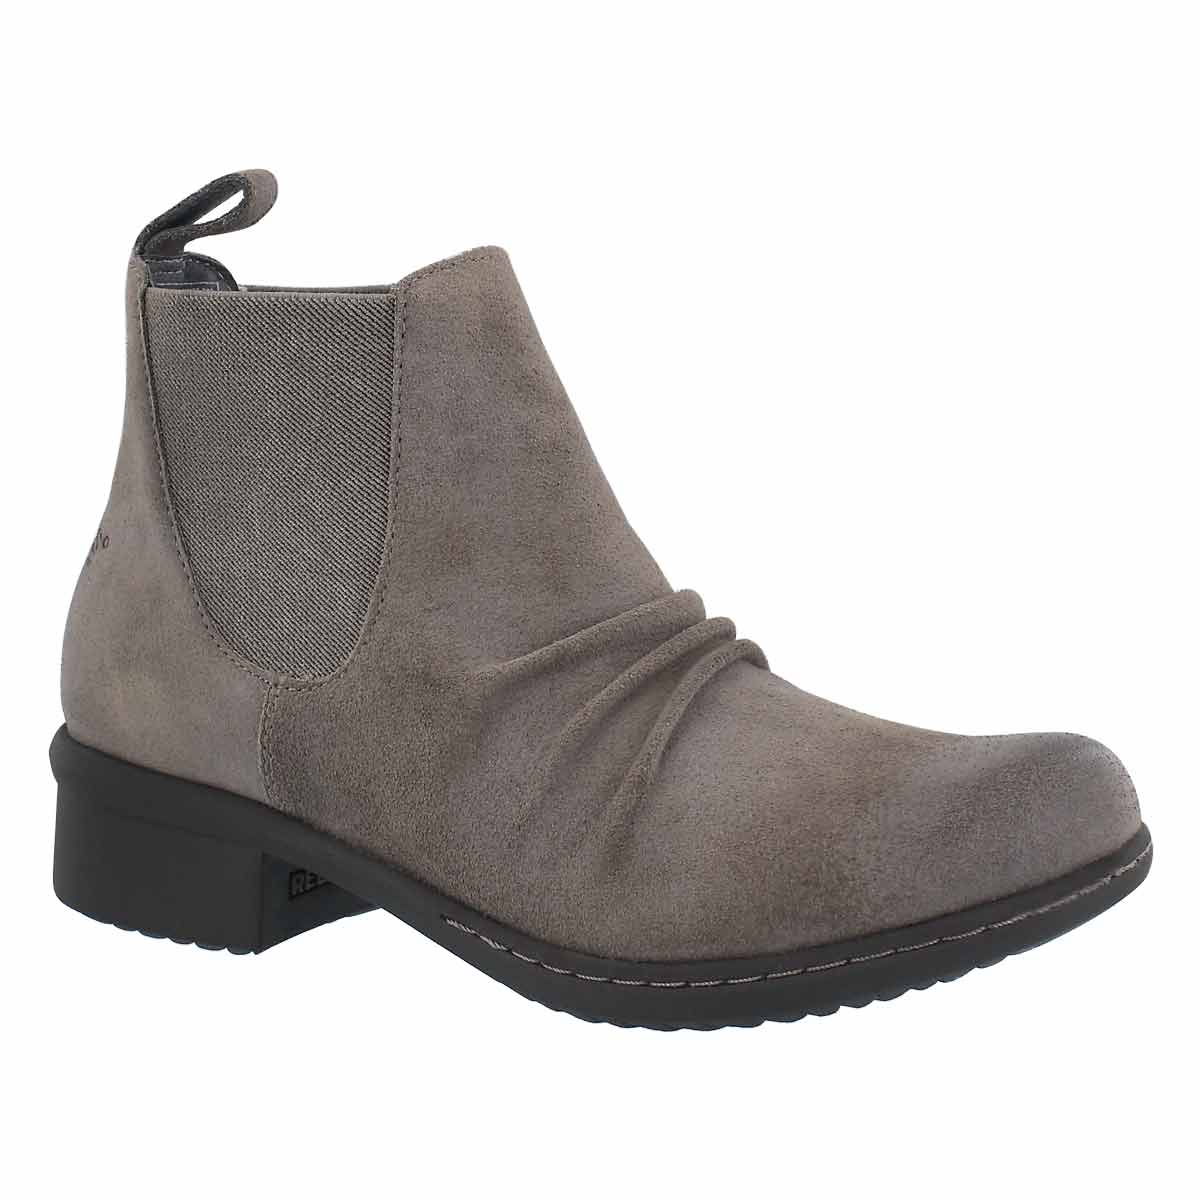 Women's AUBURN taupe wtpf slip on ankle boots